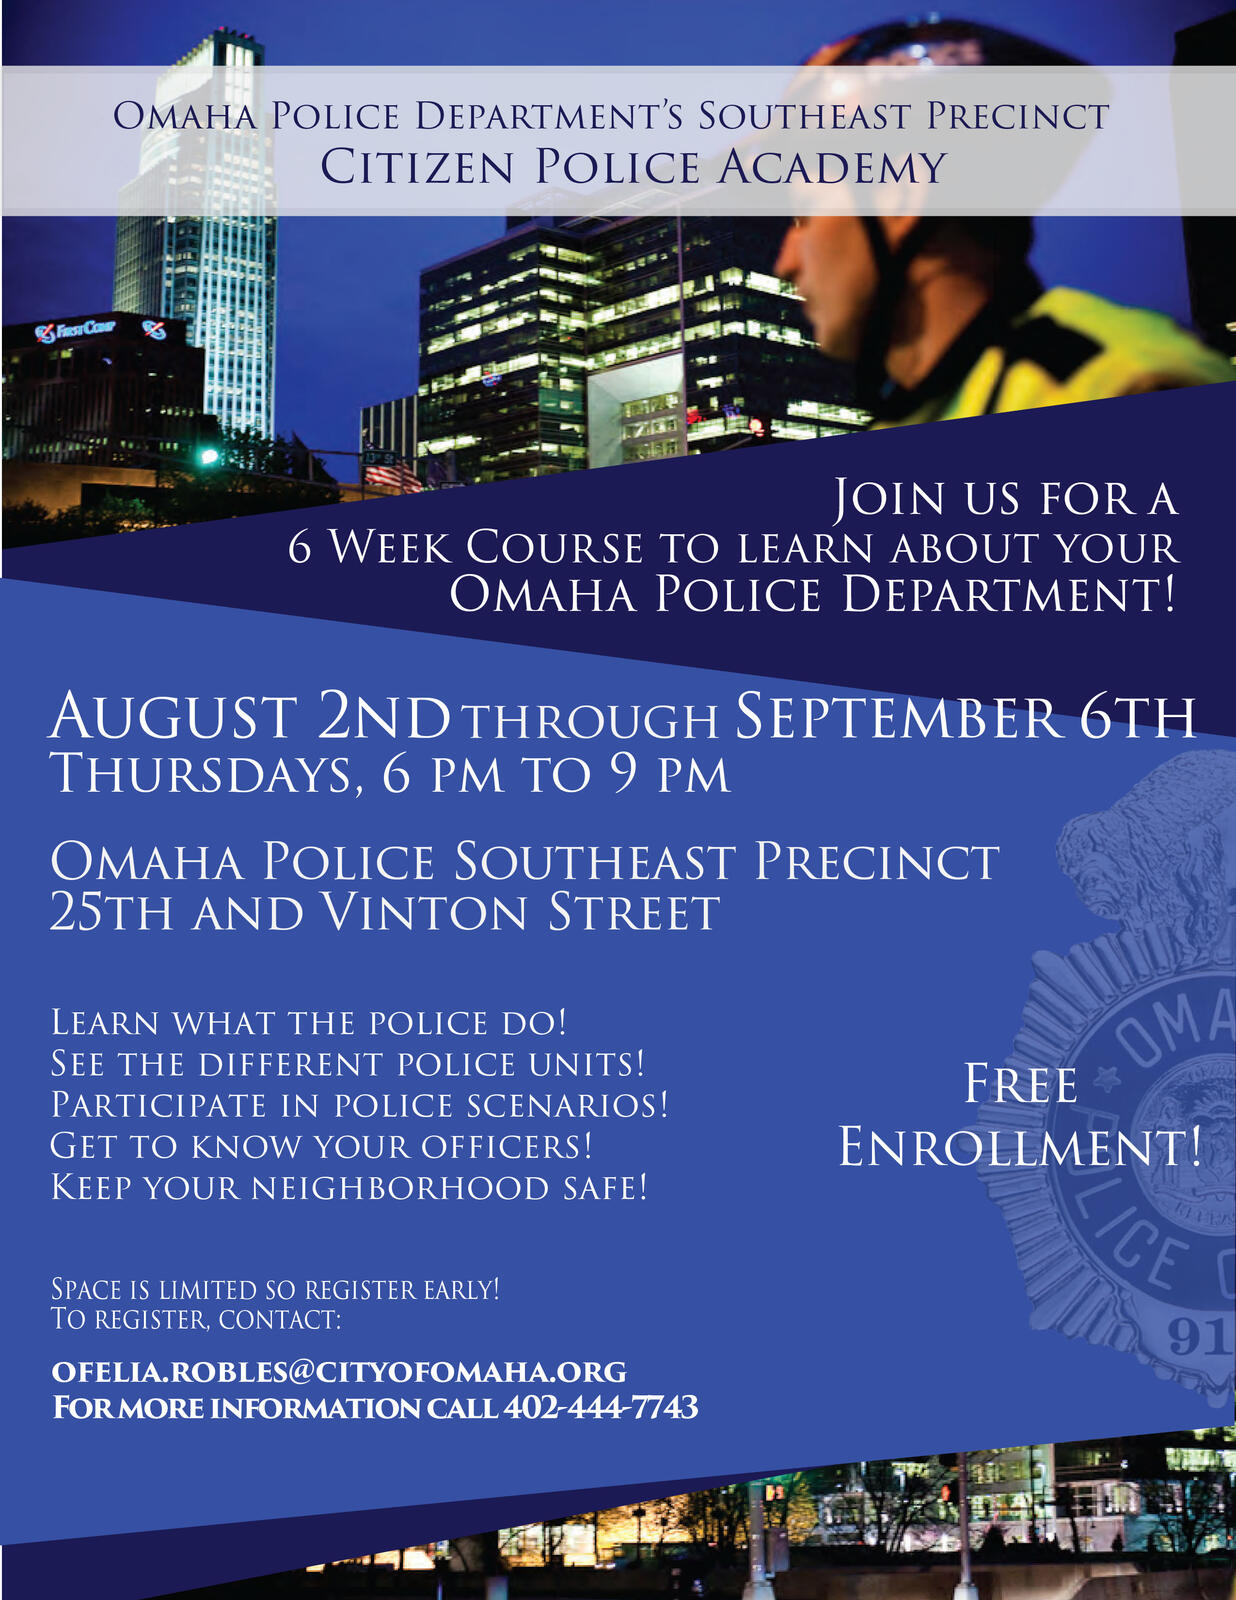 Citizen Police Academy 2018 (Omaha Police Department) &mdash